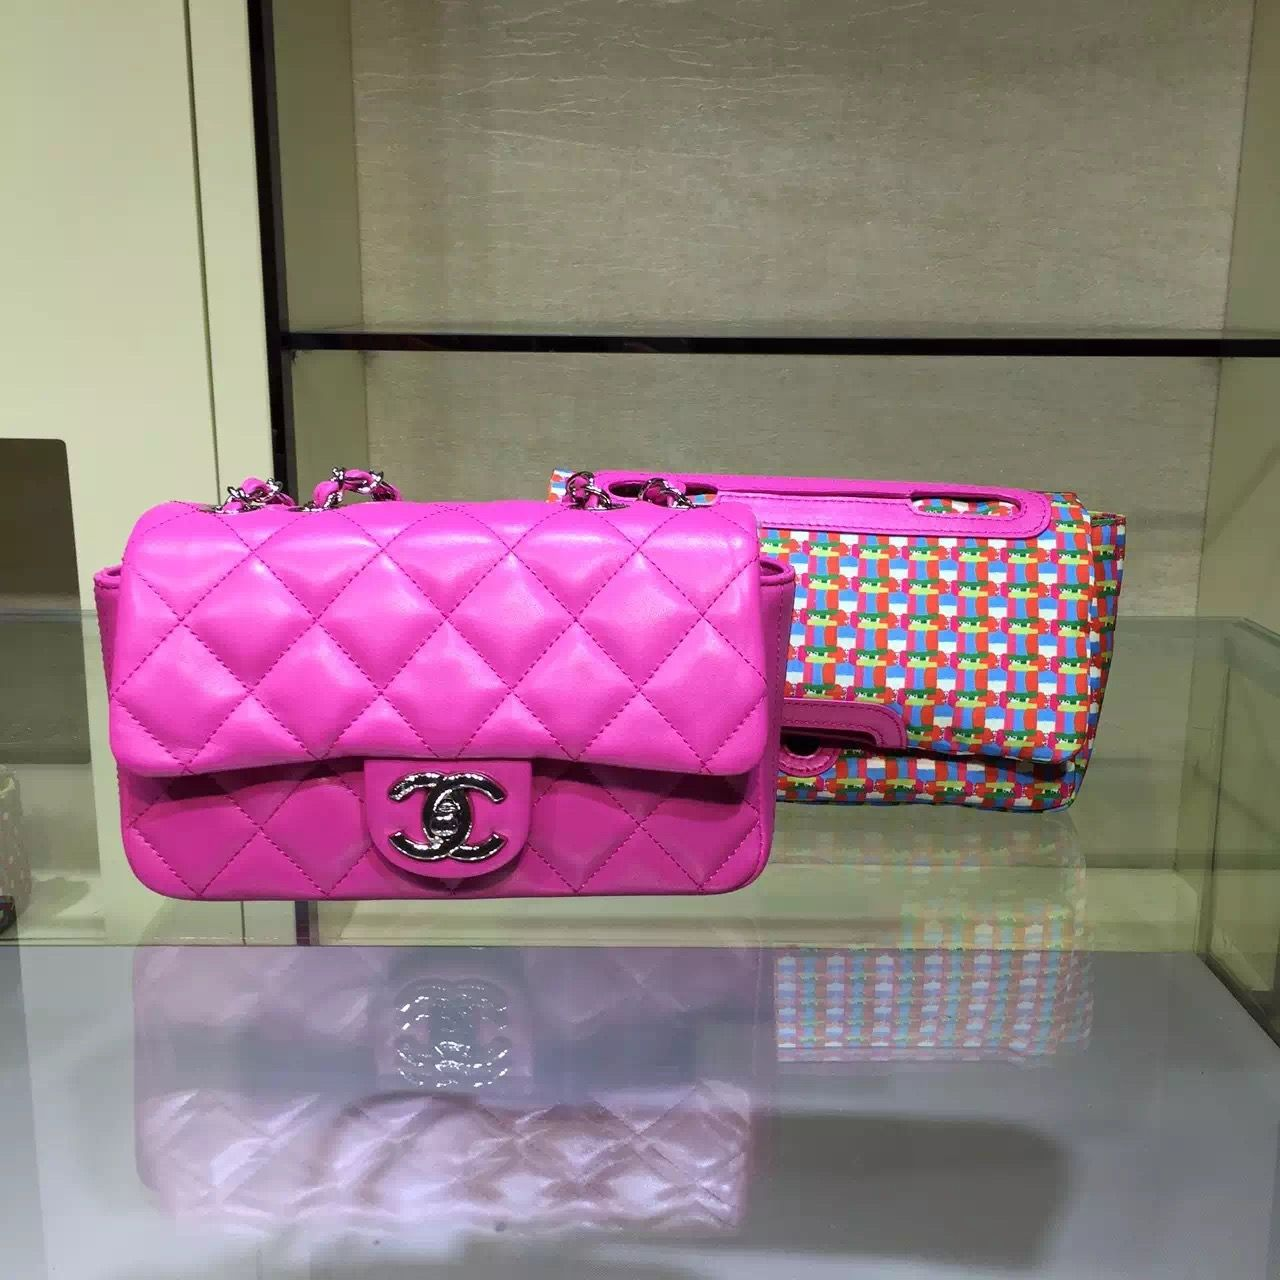 a2ebf65d9ddc Chanel Rubber Flap Bag With A Removable Raincoat Cruise 2016 ...